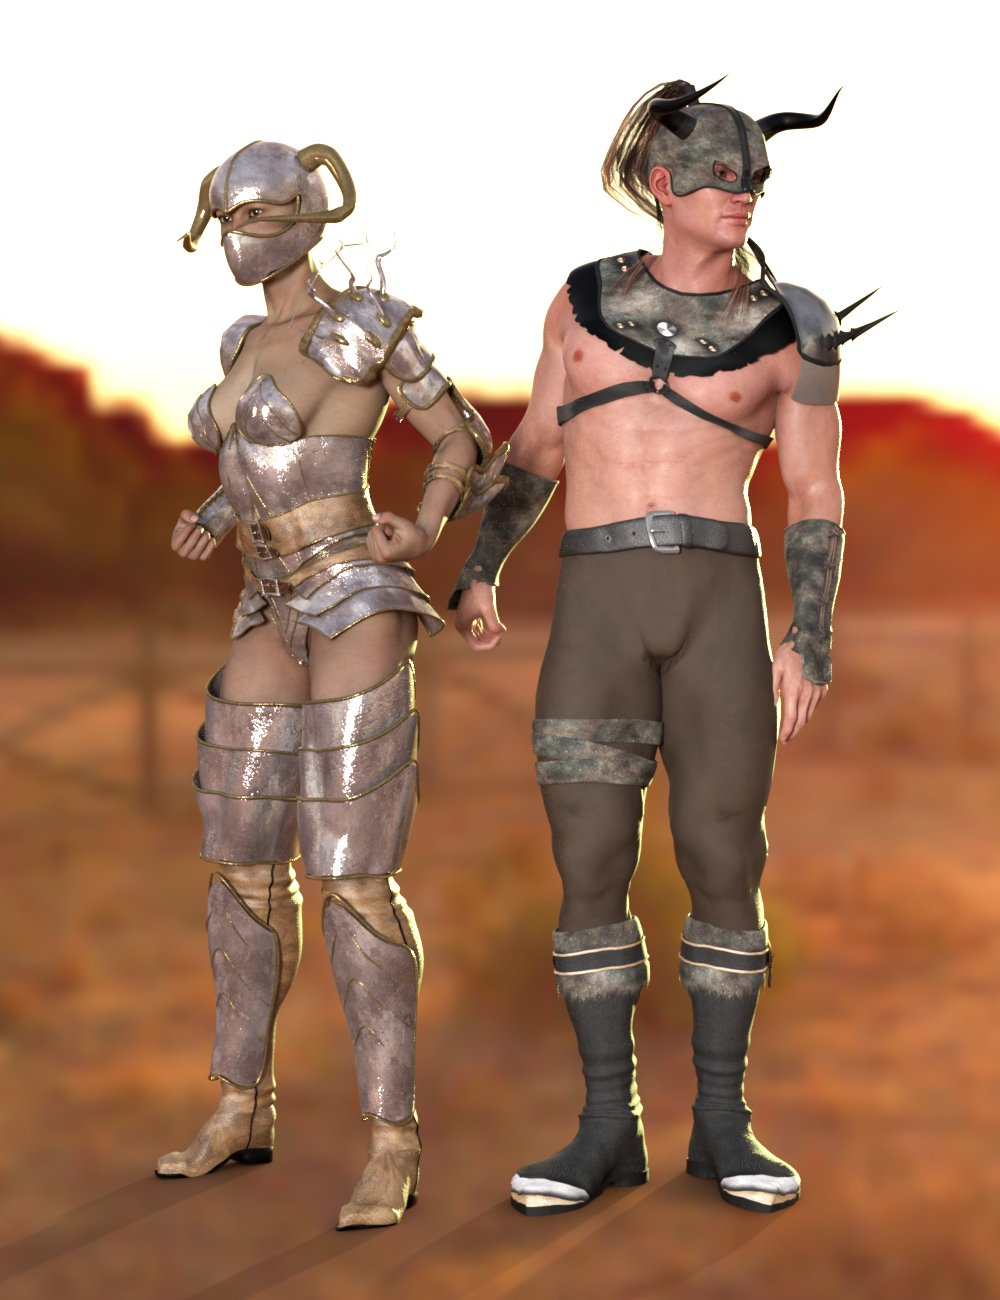 SY Victoria 3 and Michael 3 Clones for Genesis 8 by: Sickleyield, 3D Models by Daz 3D